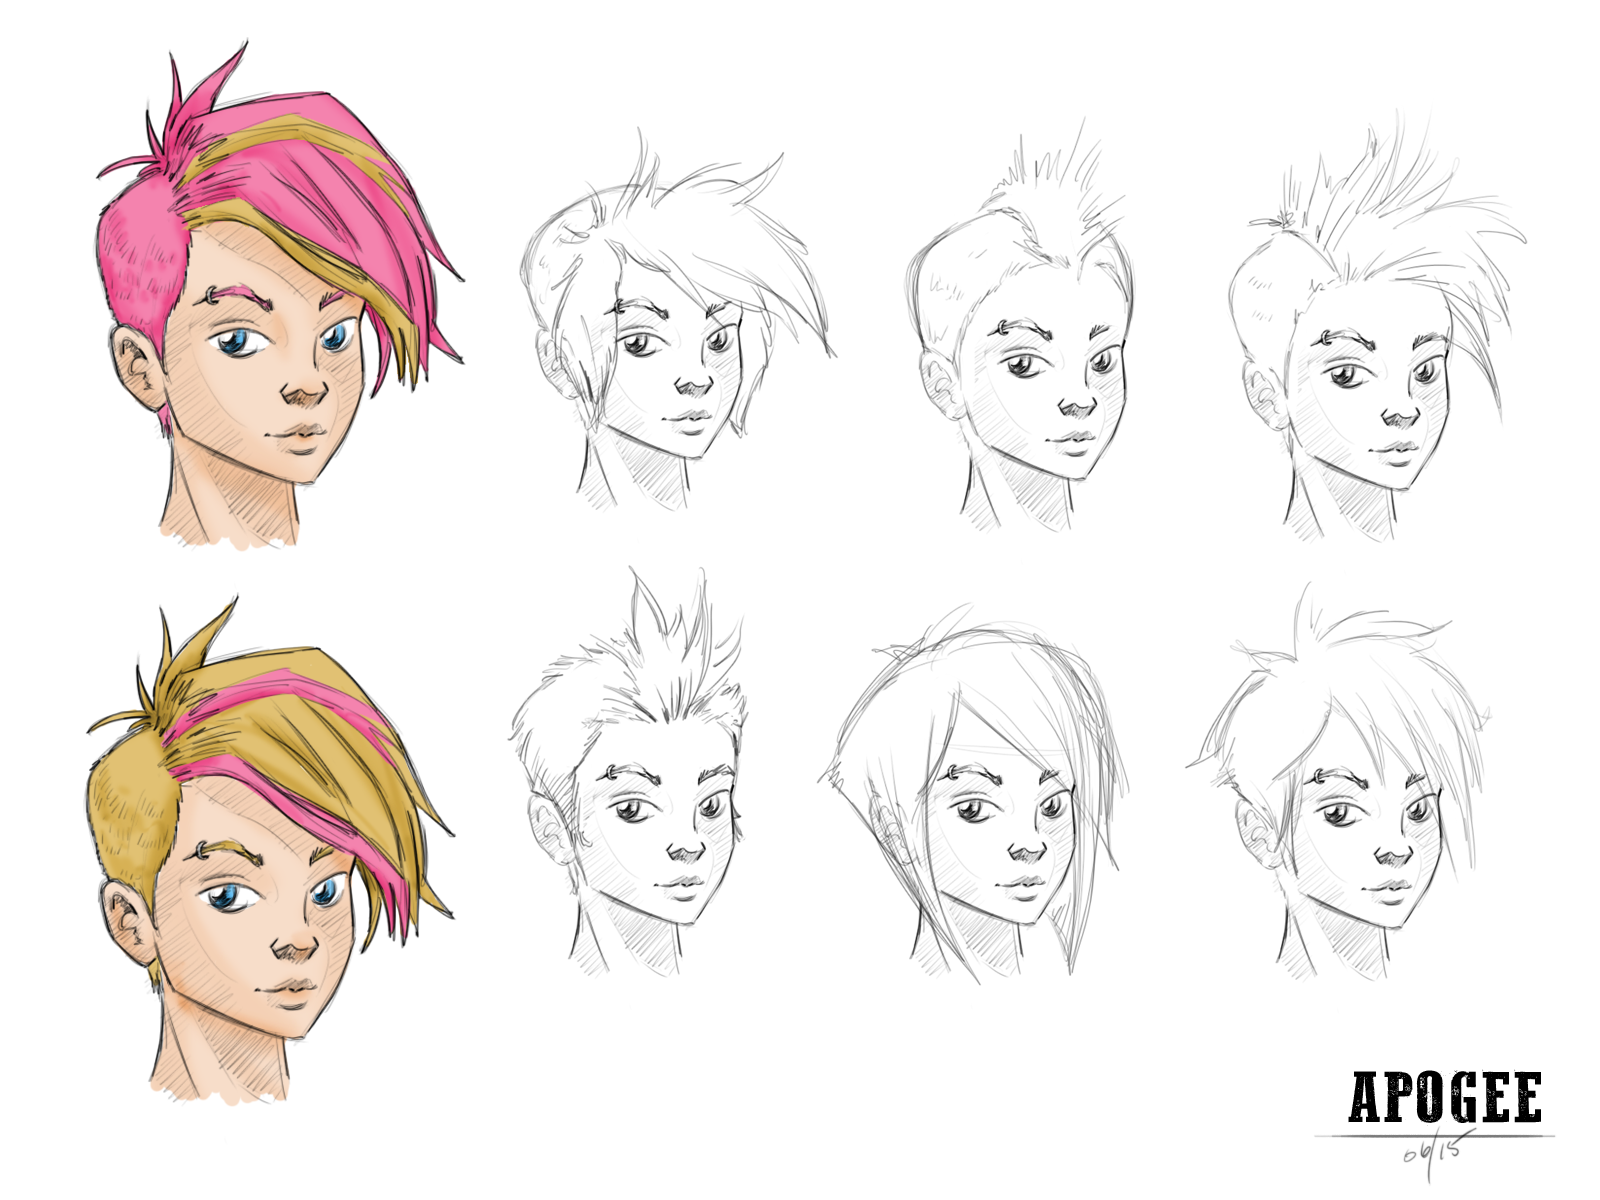 Apogee - Character Concepts